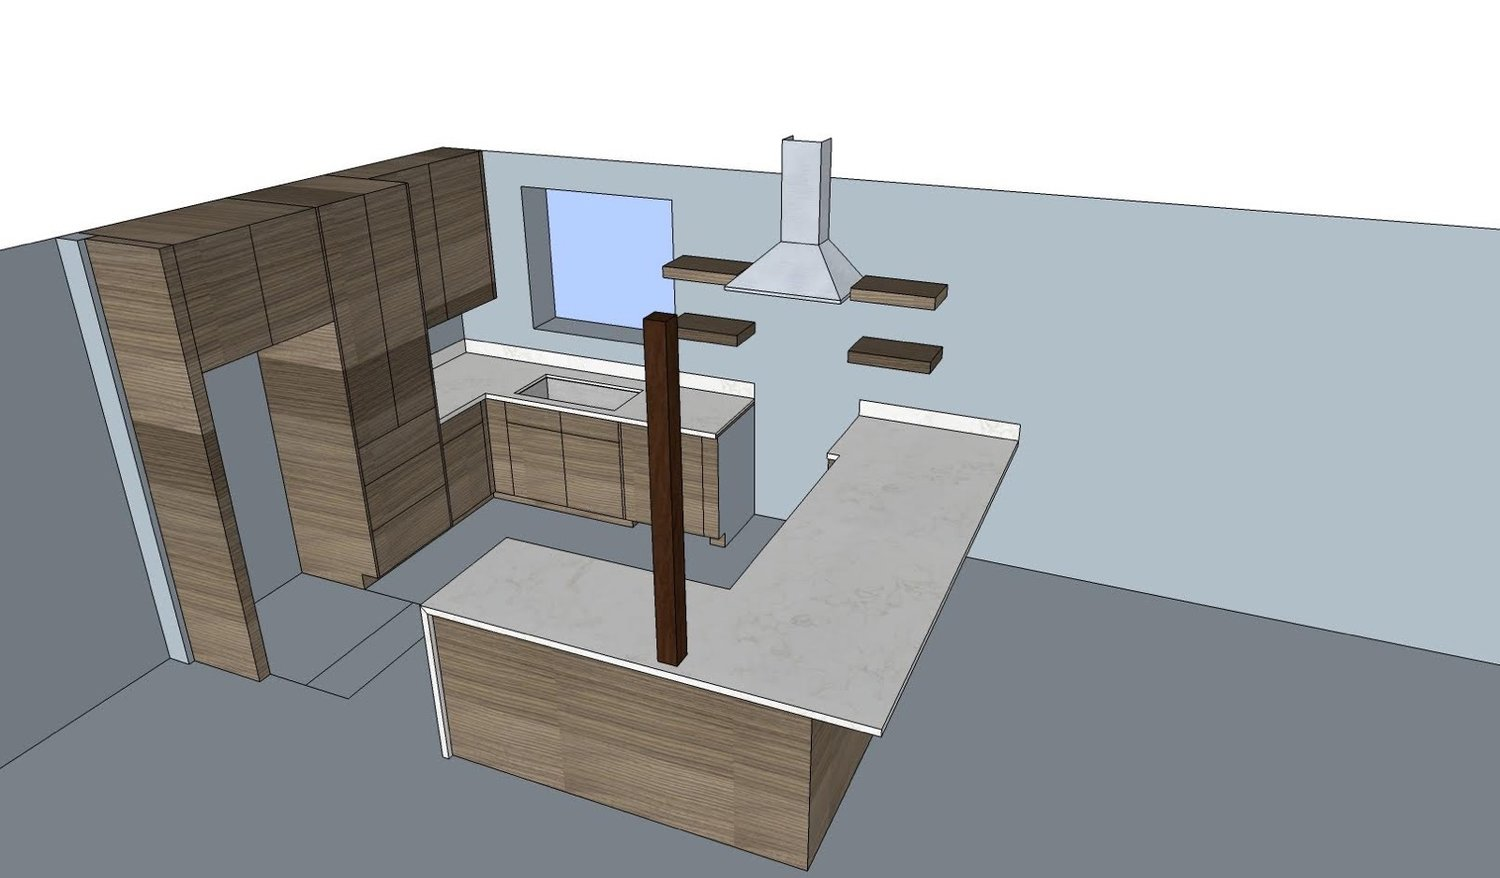 Our Atown Aframe Kitchen Remodel Plans — Part Of The Poffs